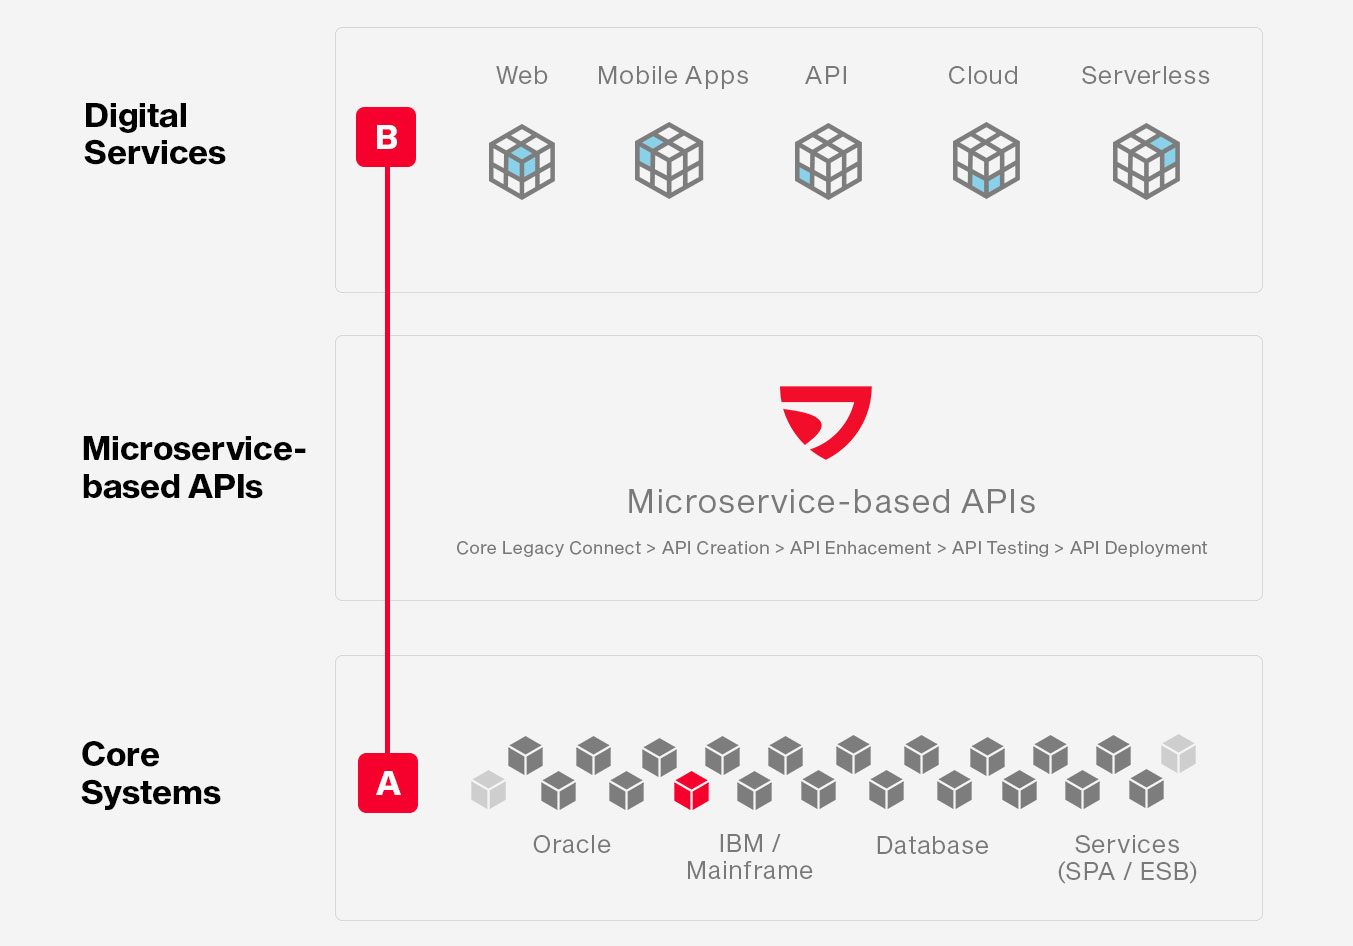 This is a simple map of how your Core System will evolve to a Digital Service.